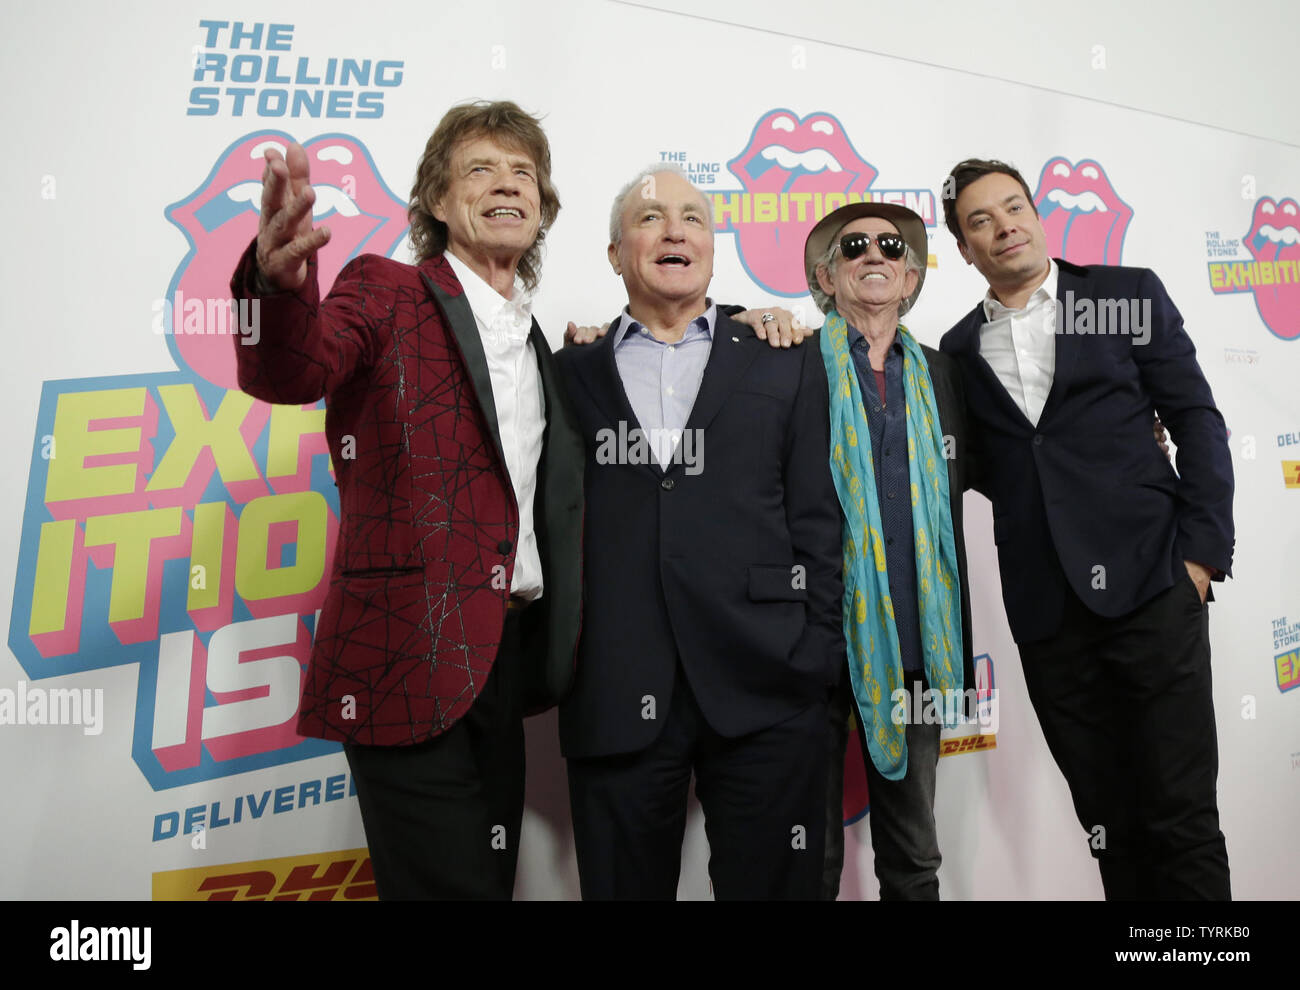 The Rolling Stones Band Stock Photos & The Rolling Stones